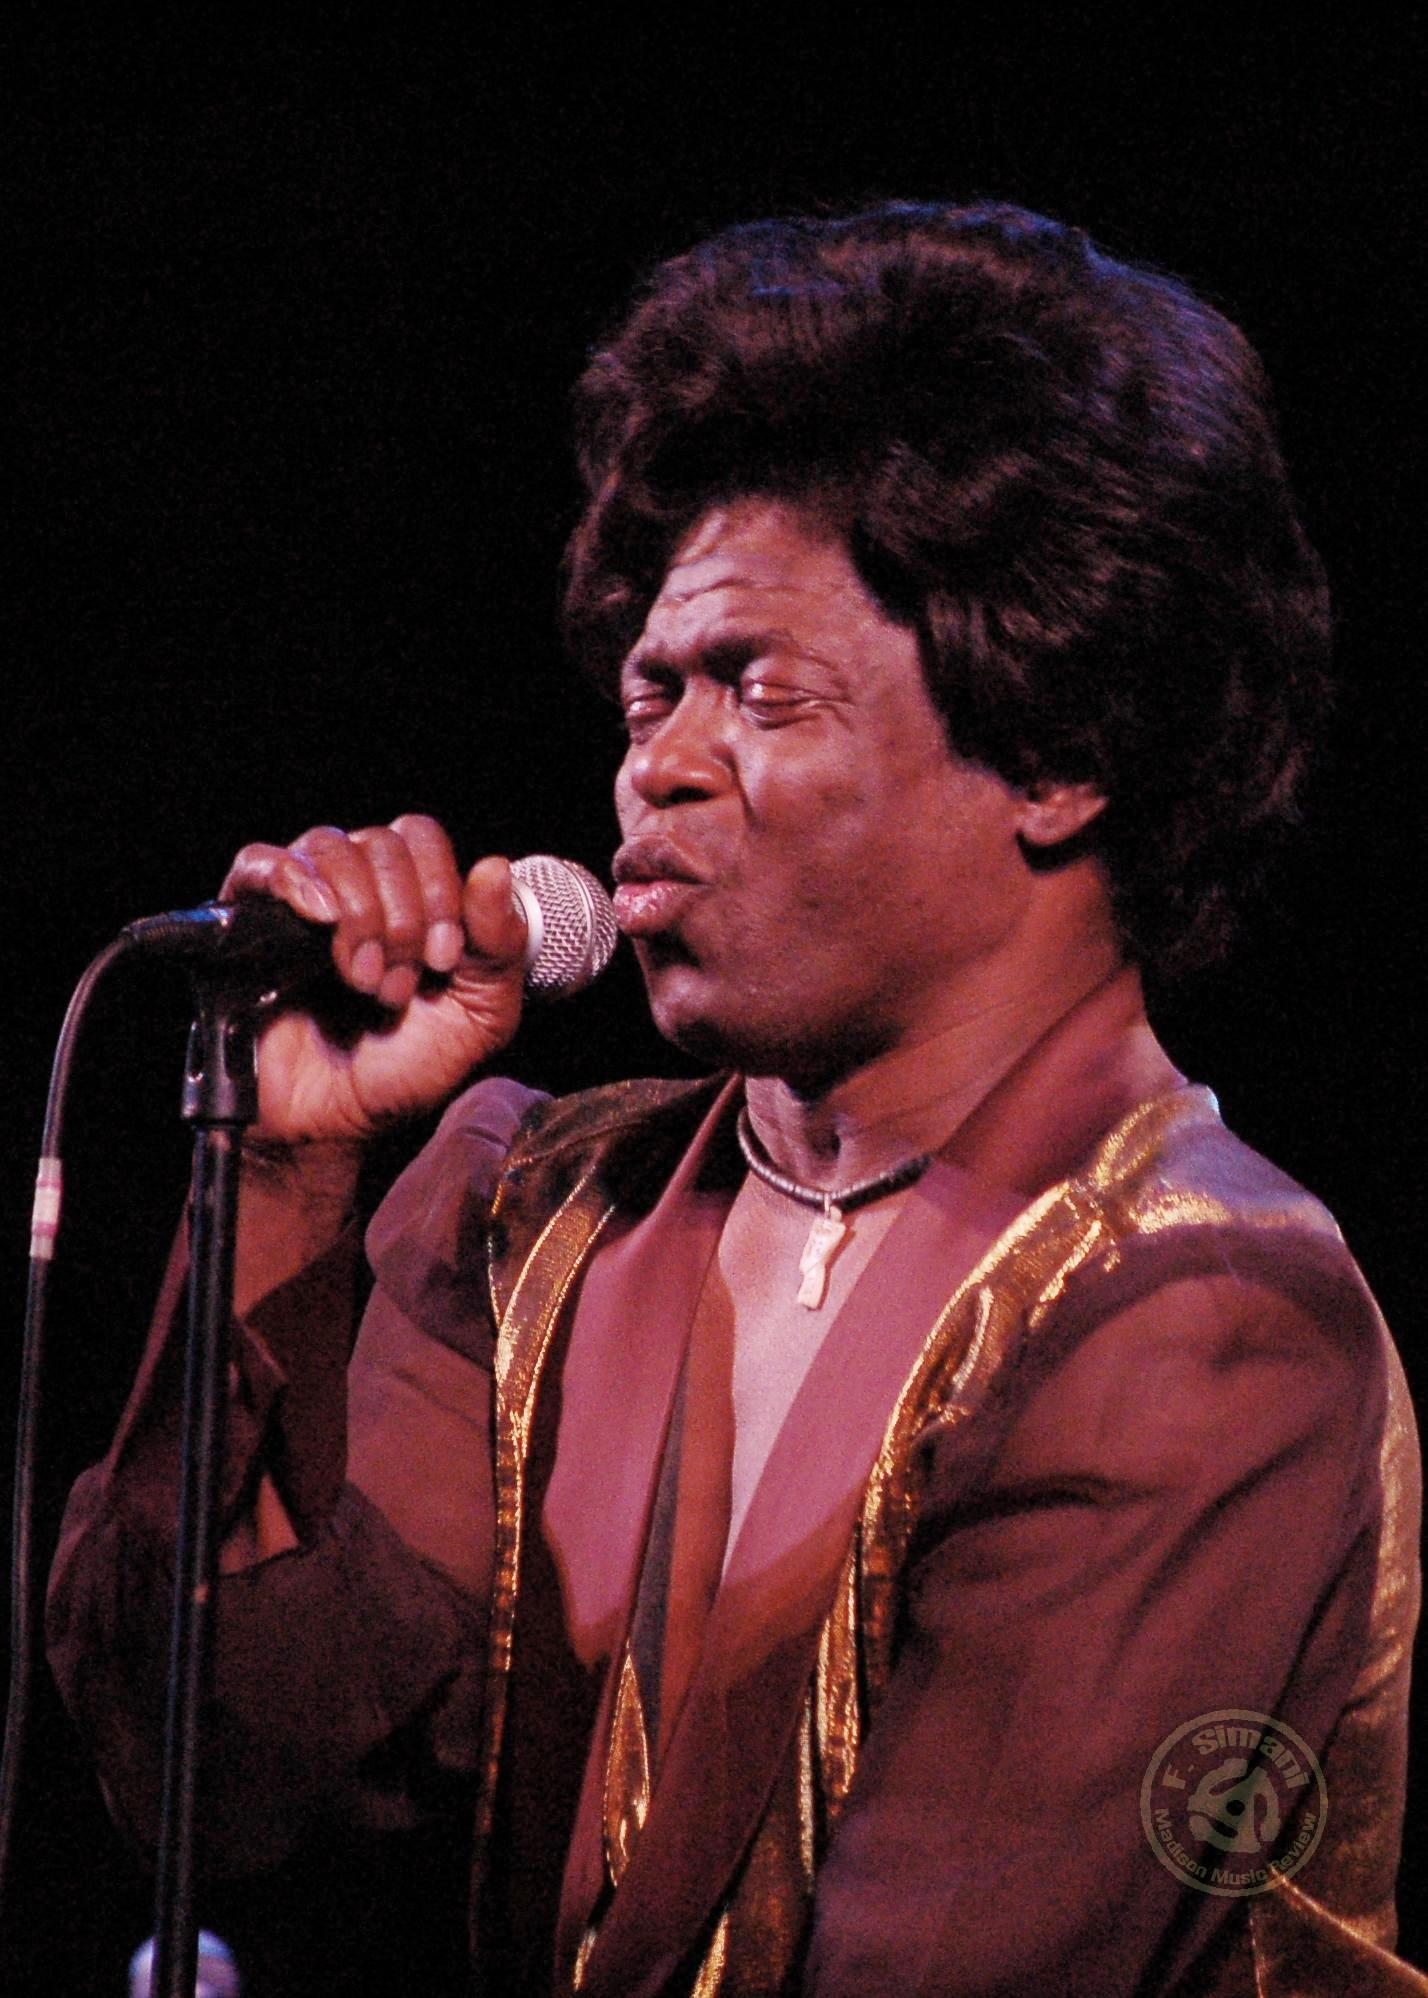 CHARLES BRADLEY & HIS EXTRAORDINAIRES – Wed., February 15, 2012 – High Noon Saloon